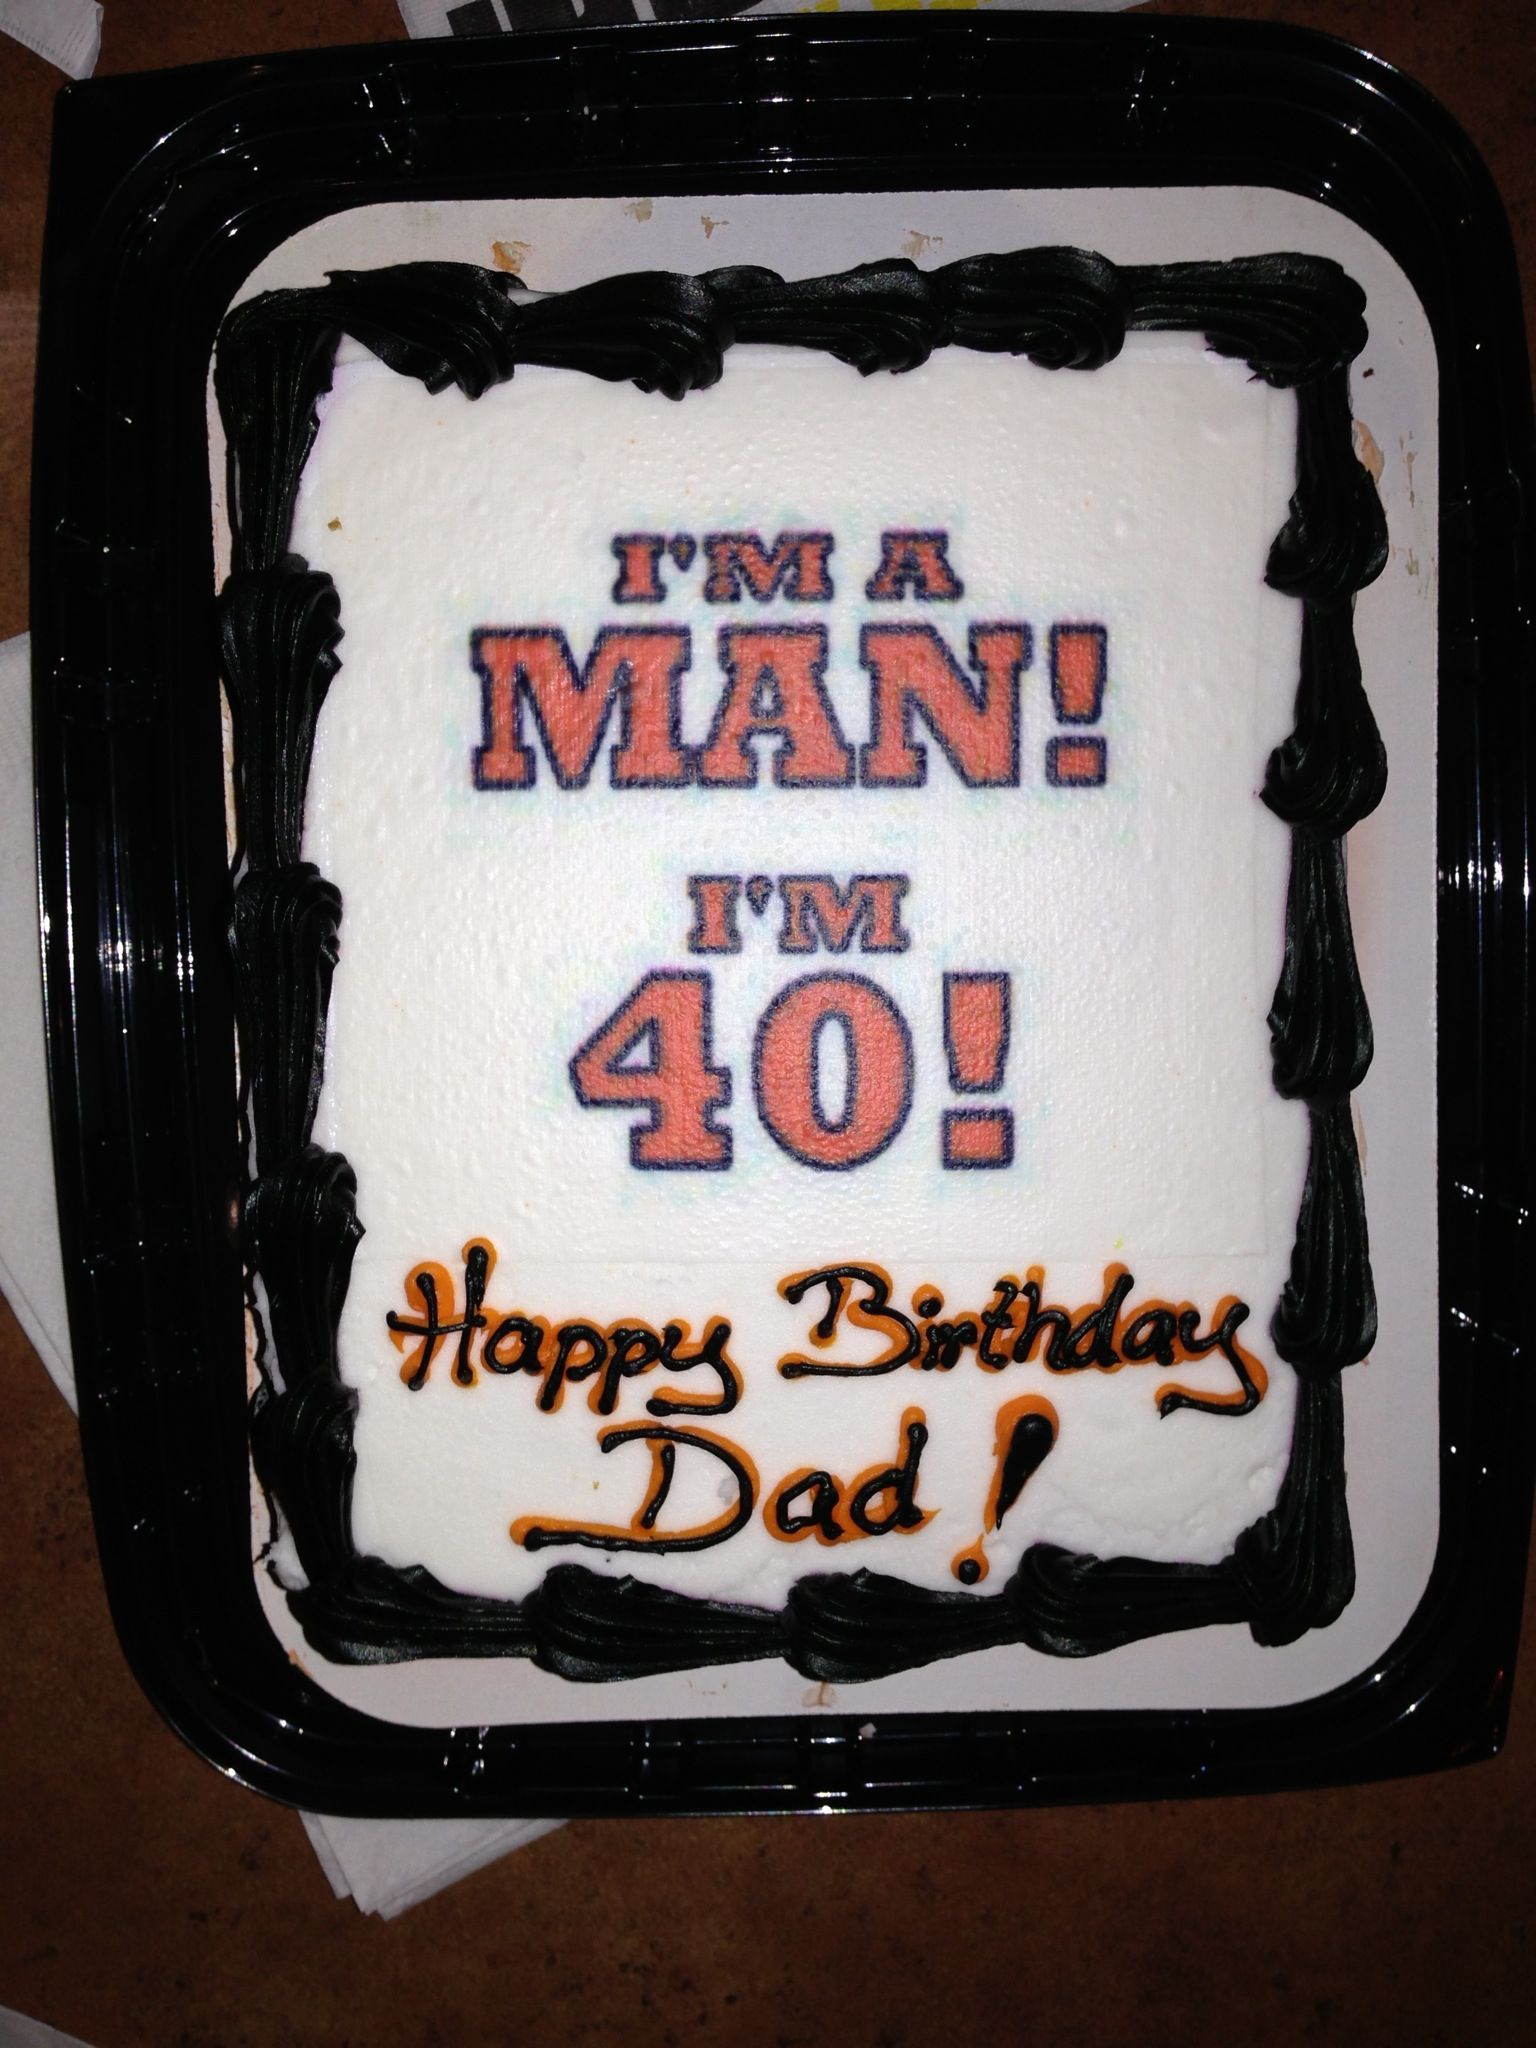 40th birthday cake for my husband! | For the Home | Birthday cake